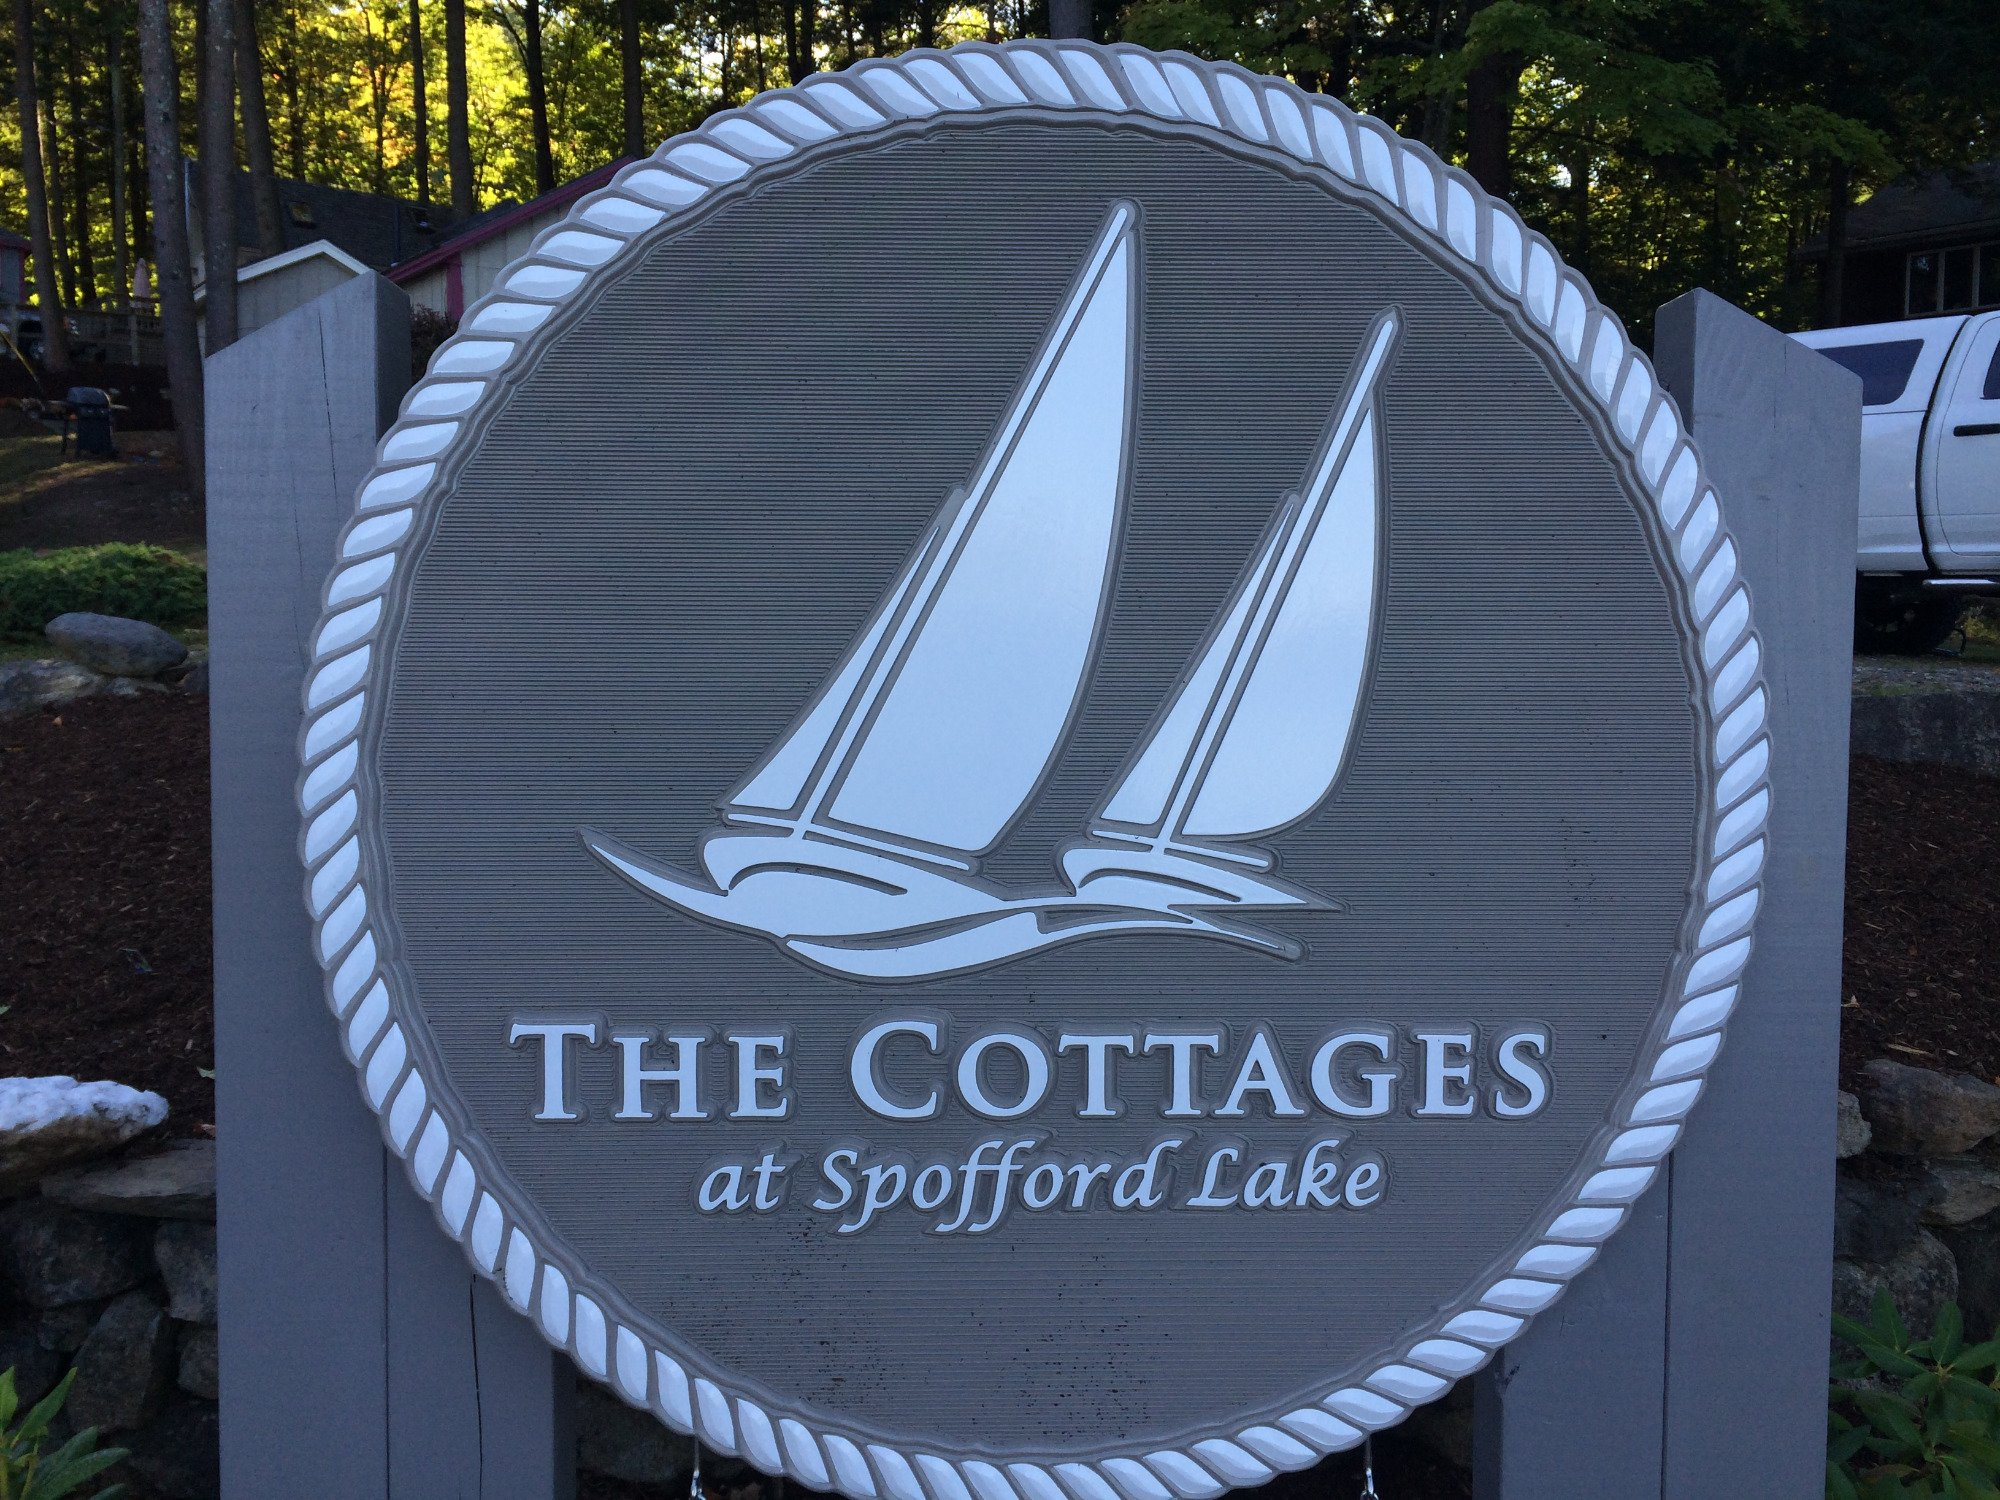 The Cottages at Spofford Lake